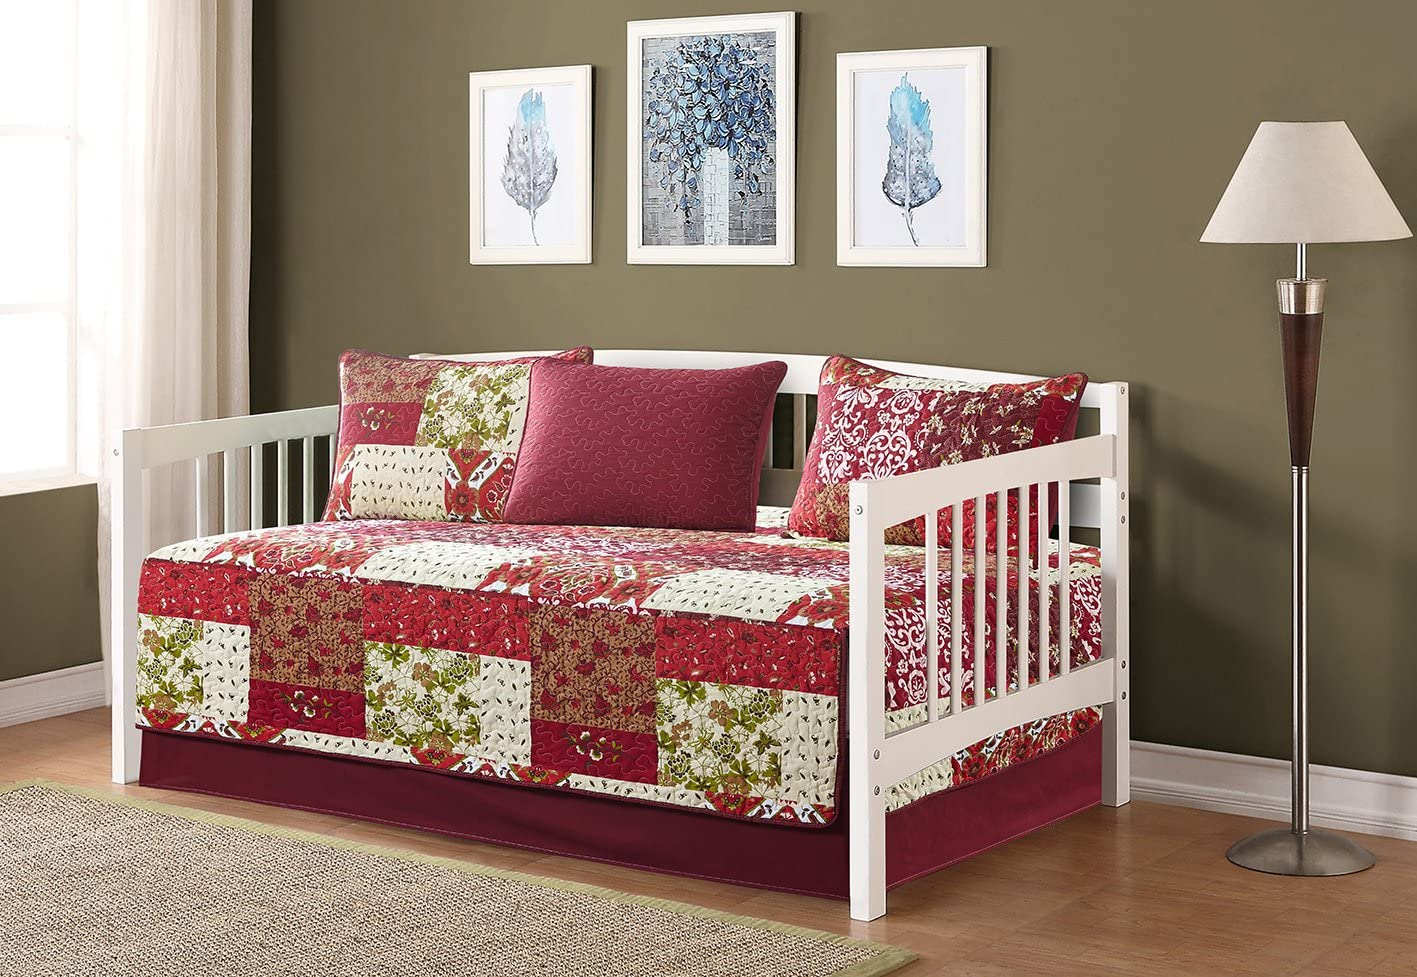 Mk Collection 5pc Day Bed Oversize Quilted Cover Set Patchwork Floral Red Burgundy Green Beige Brown White New